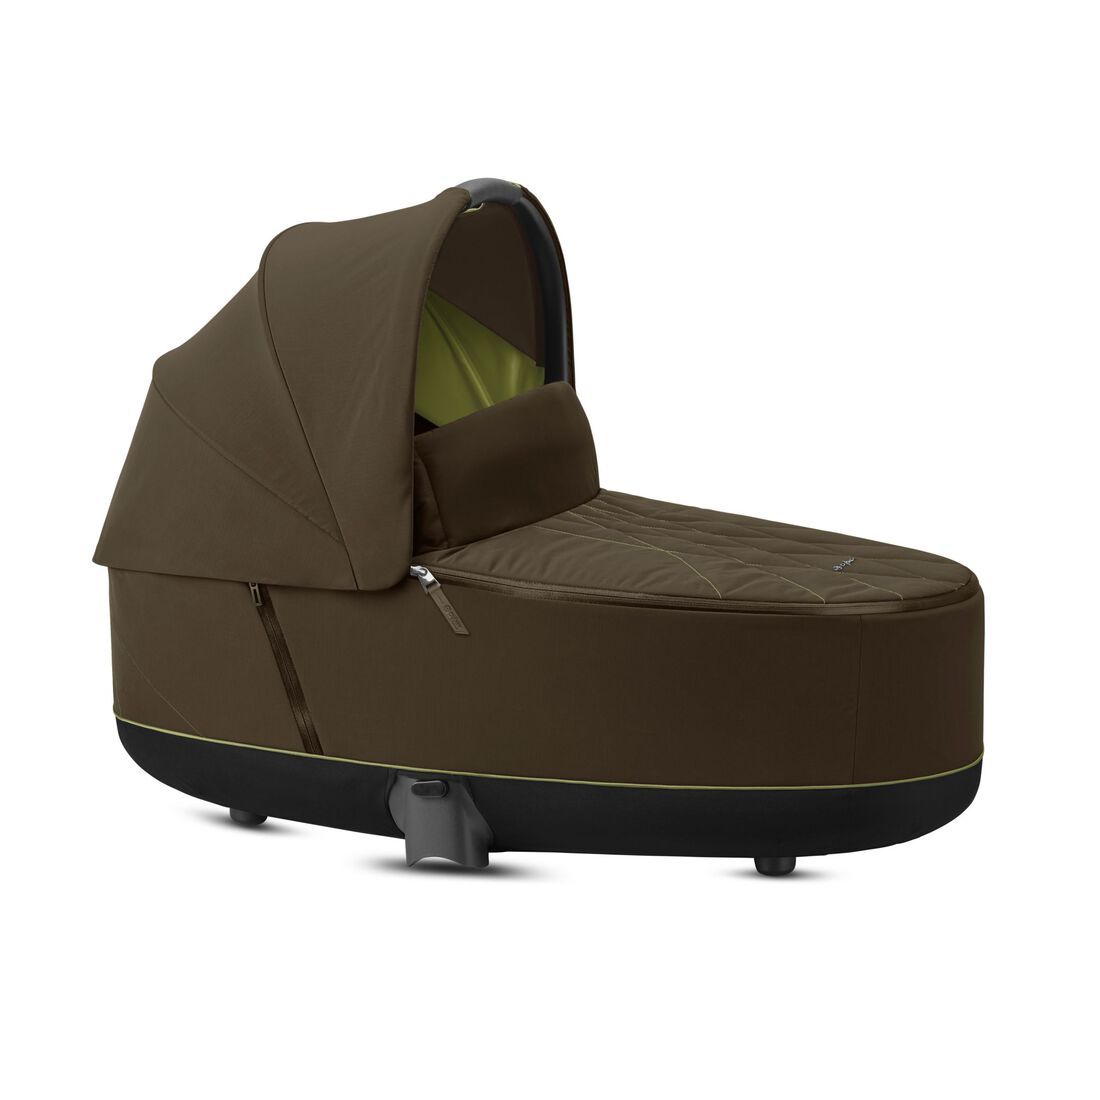 CYBEX Priam Lux Carry Cot - Khaki Green in Khaki Green large image number 1